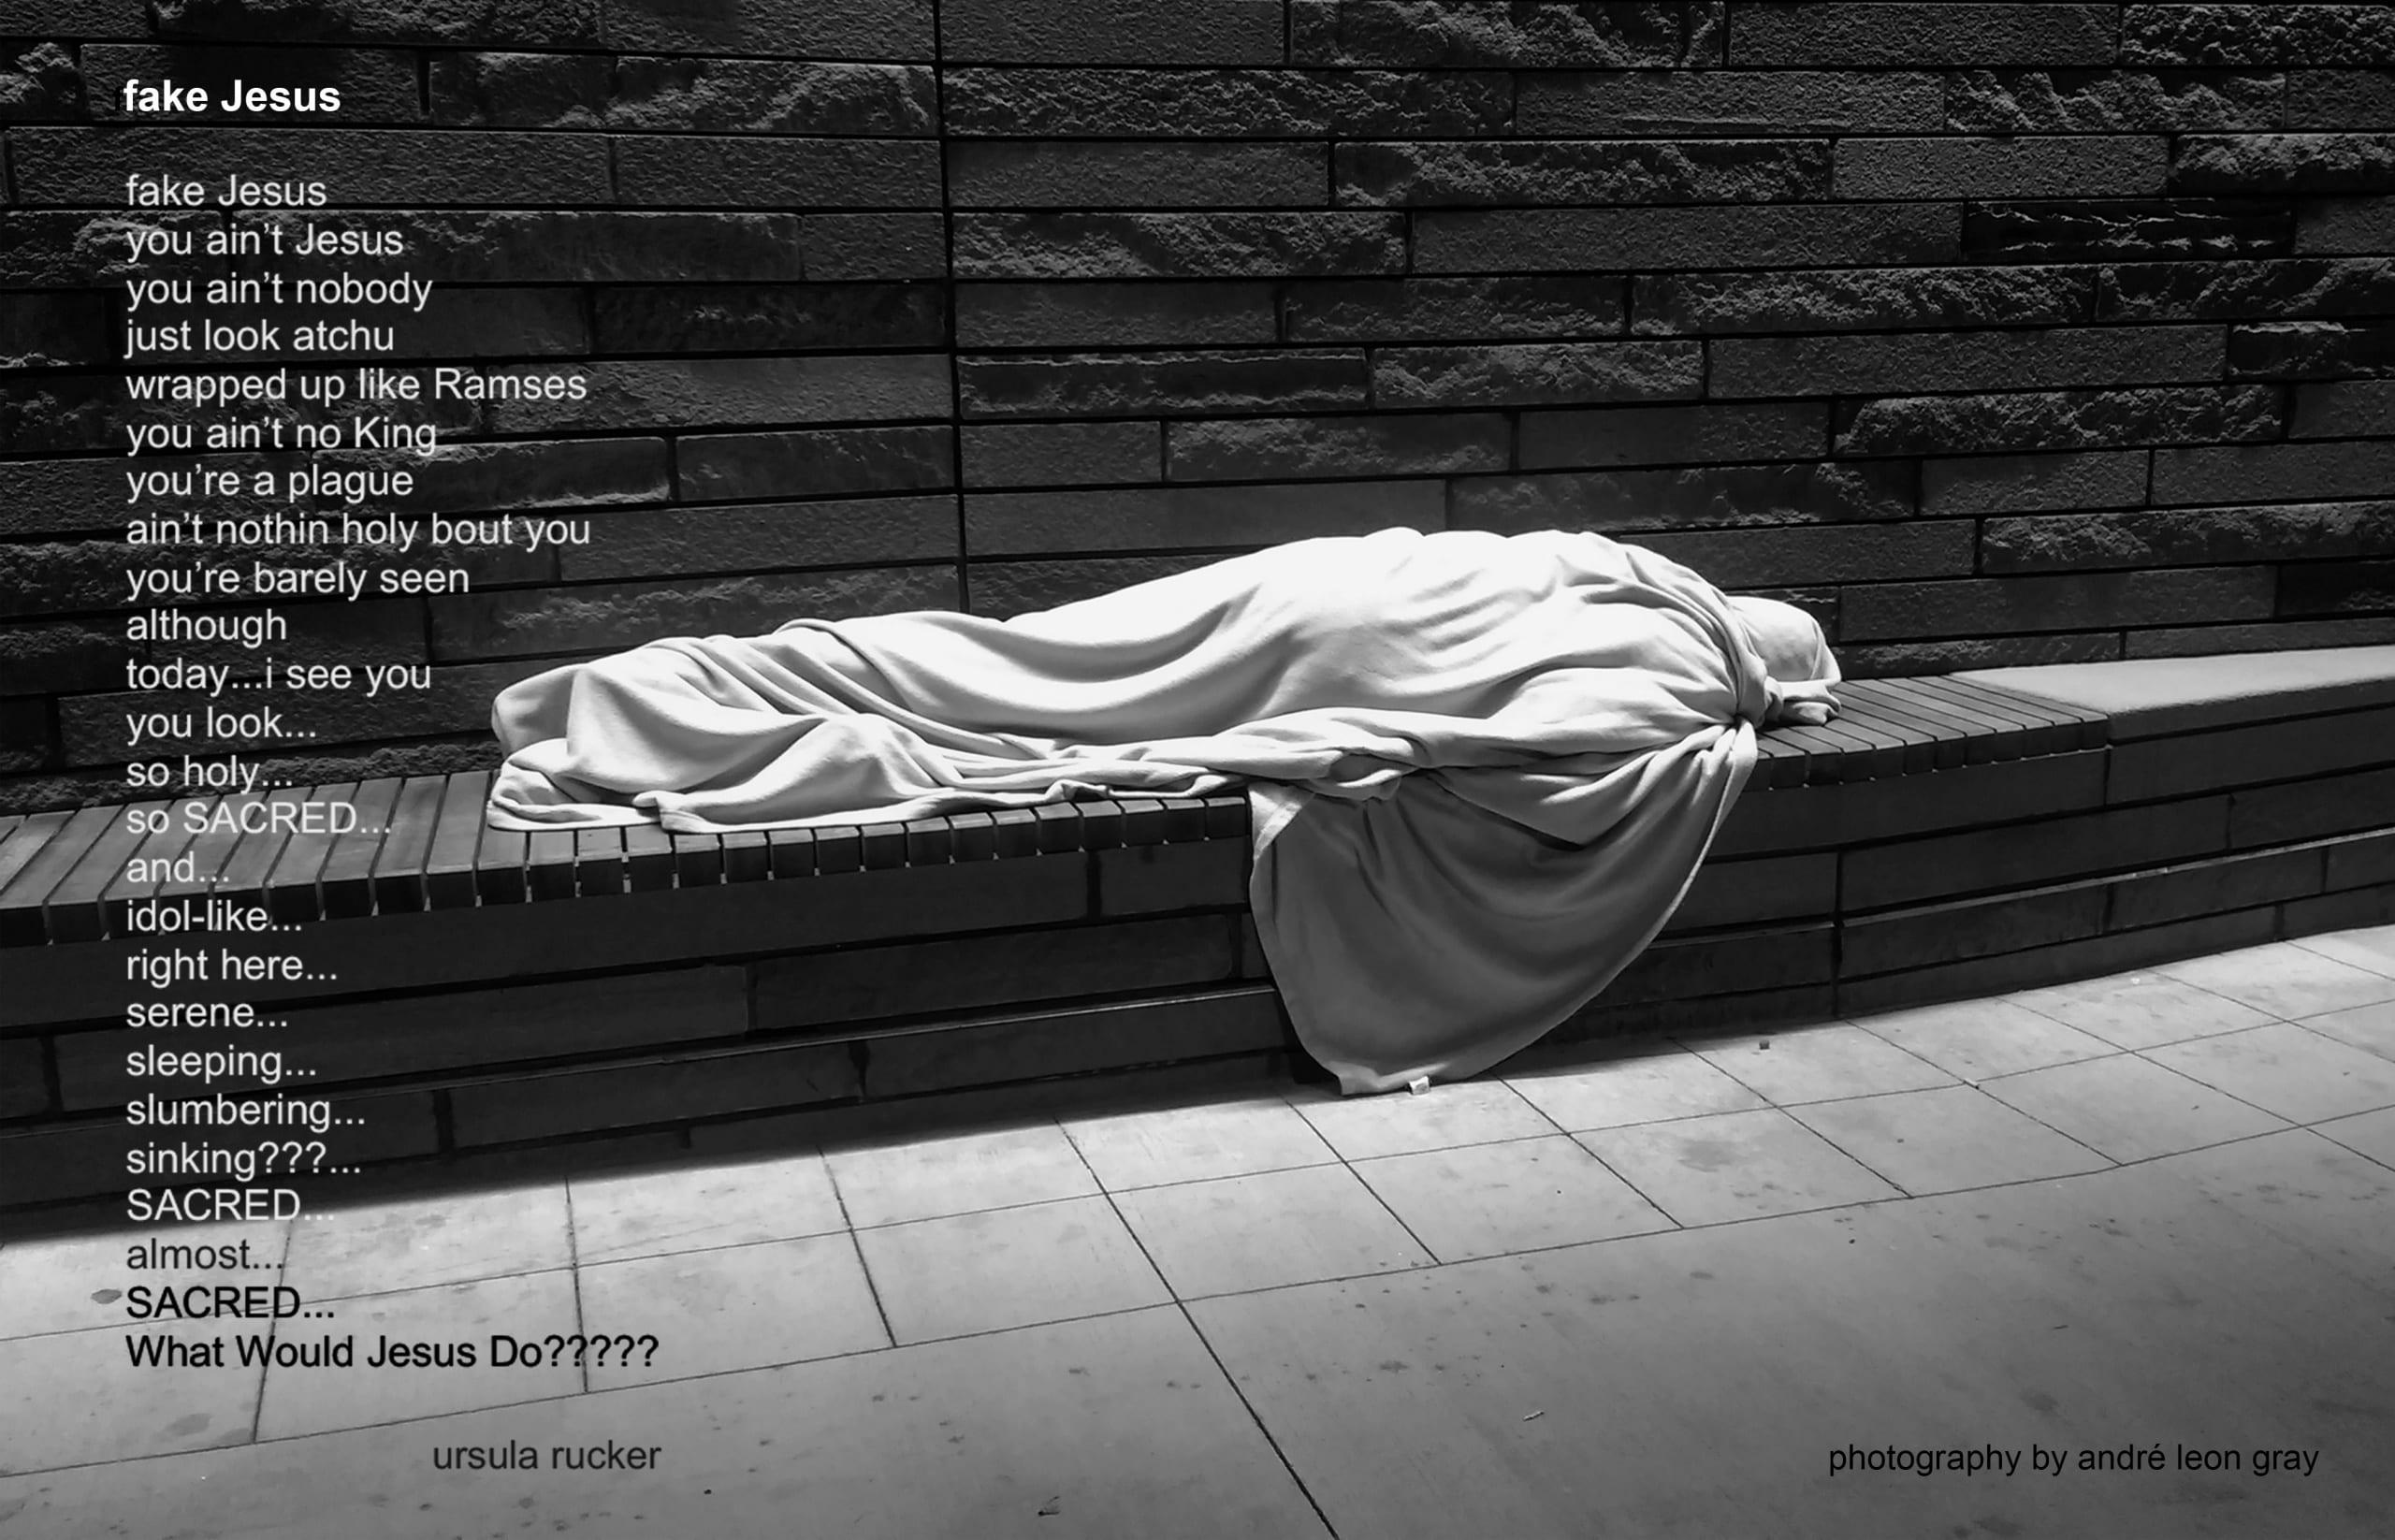 Black and white photo of figure wrapped in cloth from head to toe and laid horizontally on a low, wooden bench against a building's exterior stone wall with a poem superimposed over the left side of the image